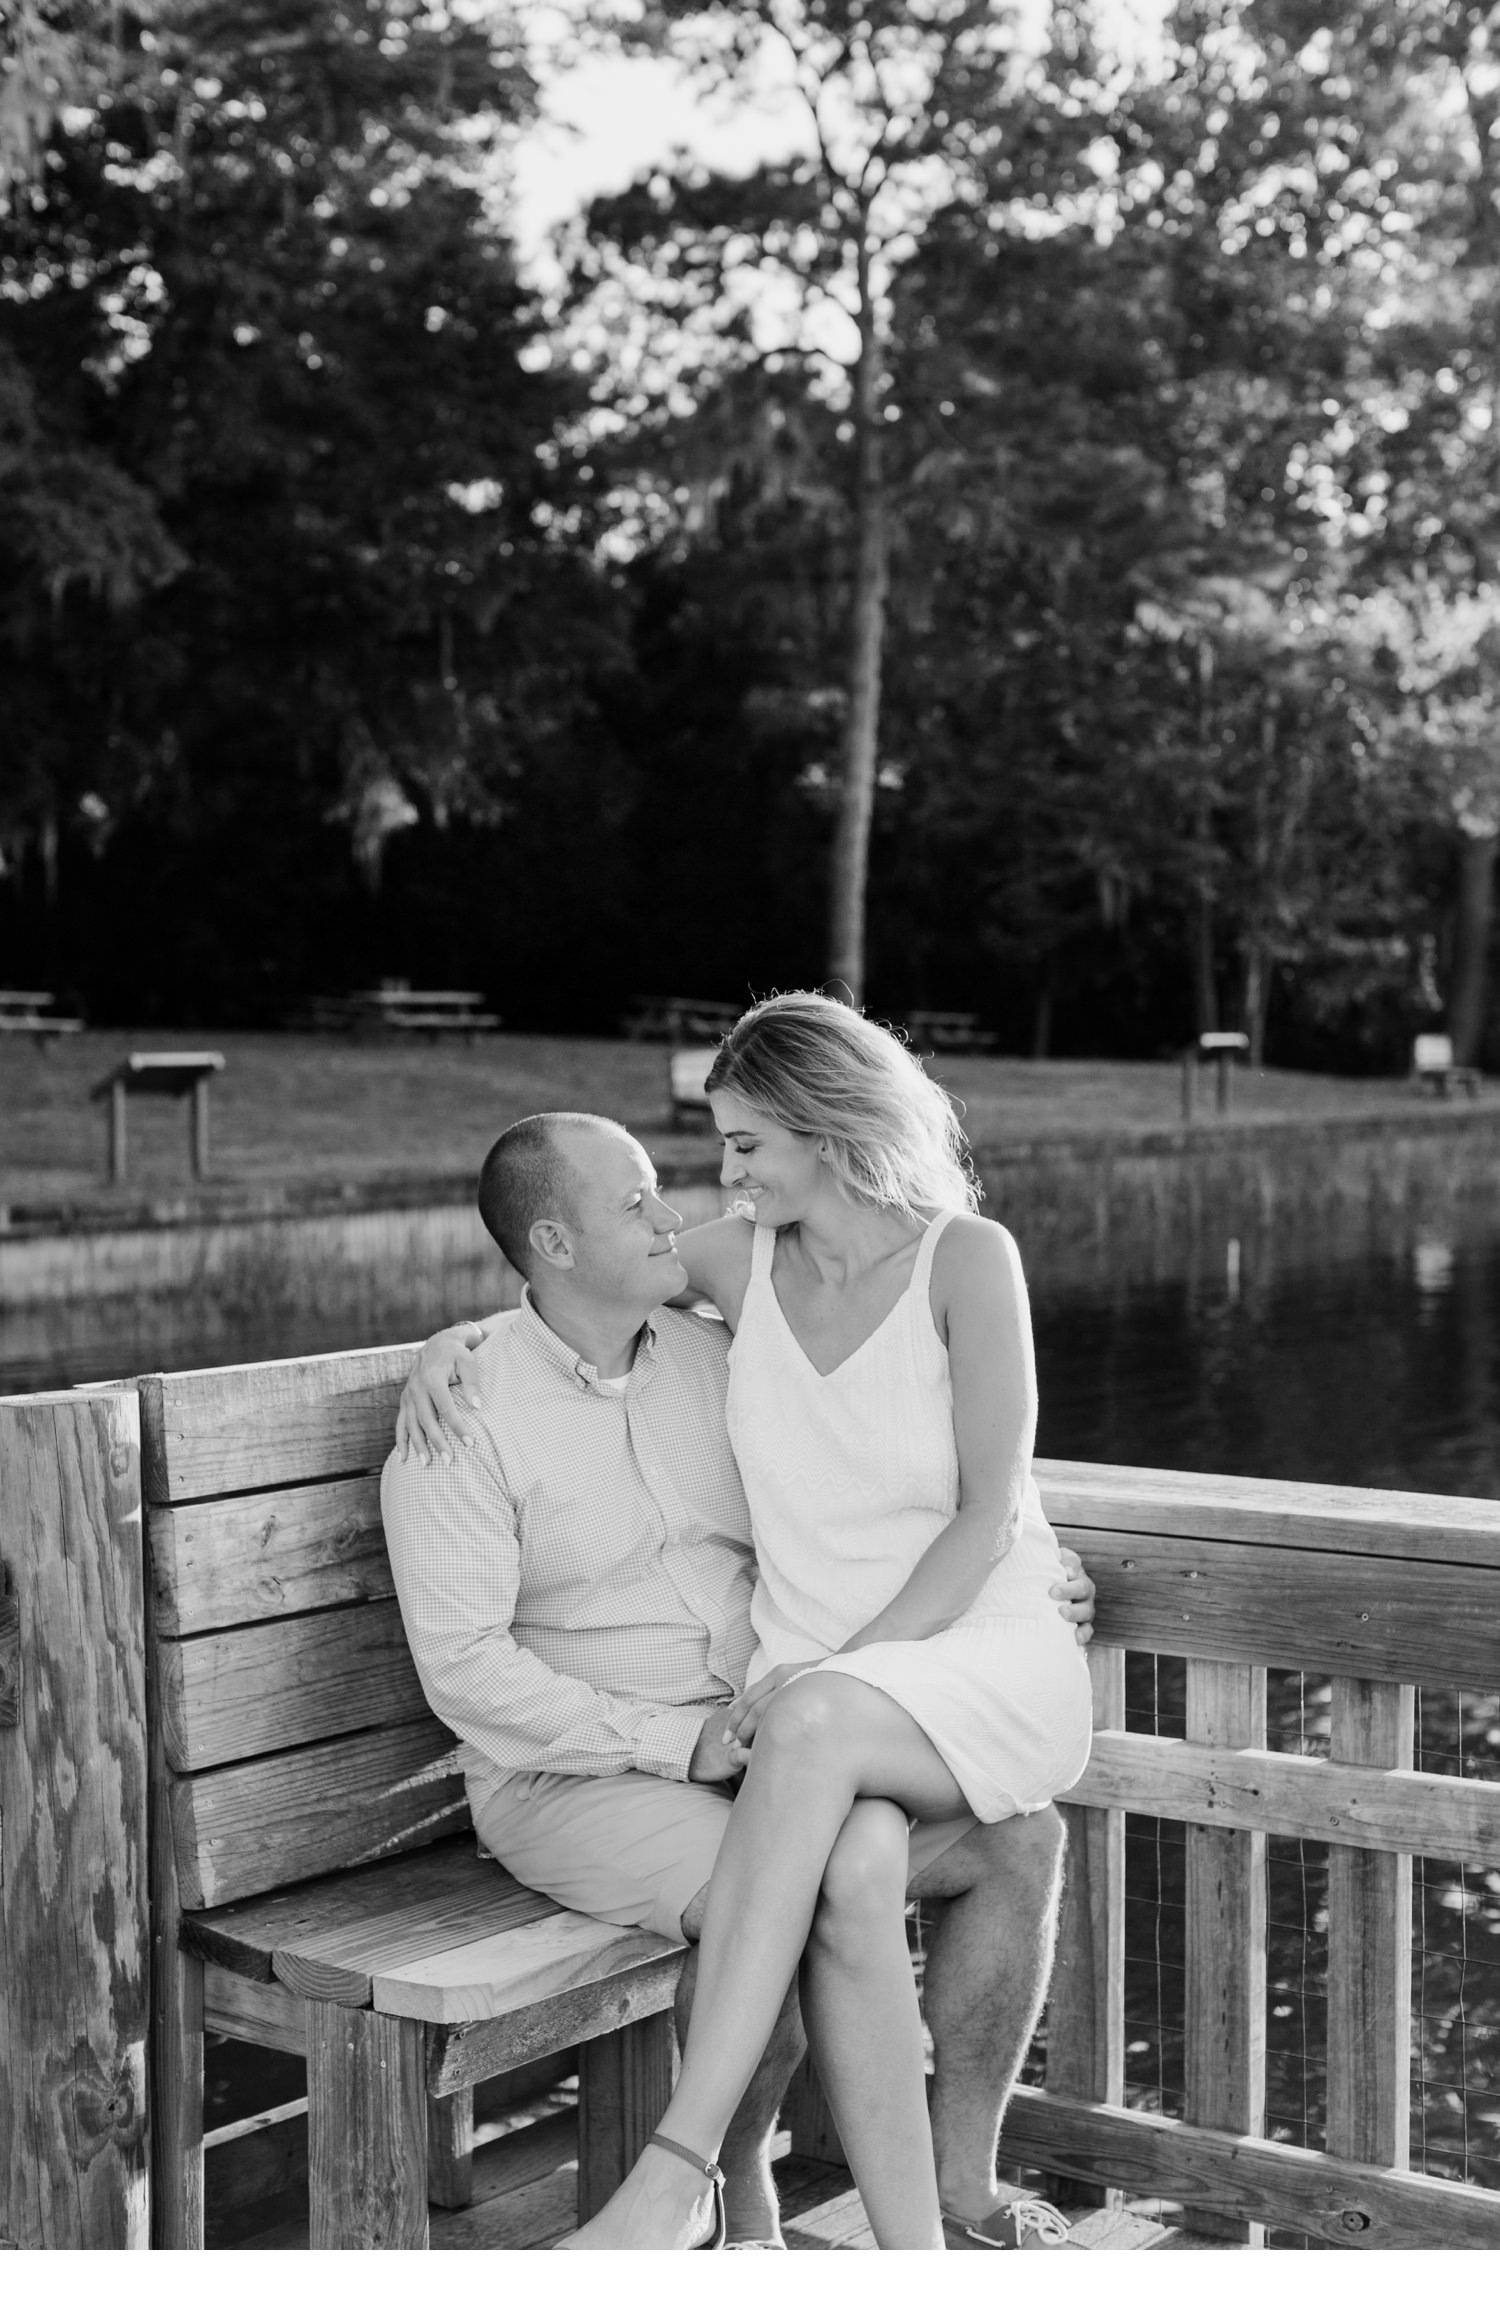 eden-gardens-state-park-engagement-session-stacie-and-jacob-9.jpg